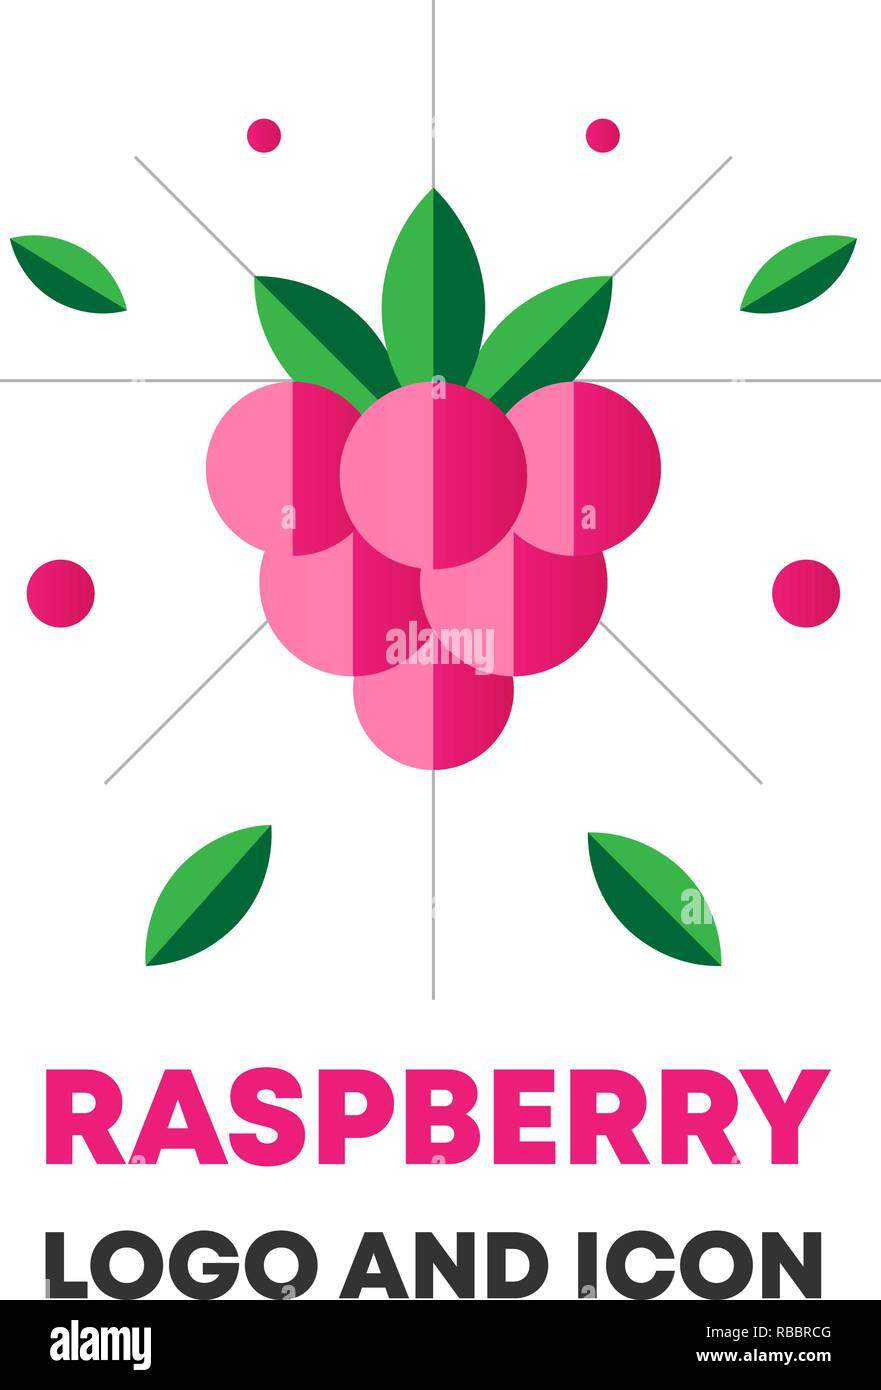 Raspberry Icon Logo Berry Vector Illustration Flat Raspberry Icon Logo For Web Design Package Abstract Flat Raspberry Icon Logo For Menu Flat Berry Vector Illustration Raspberry Icon Logo Stock Vector Image